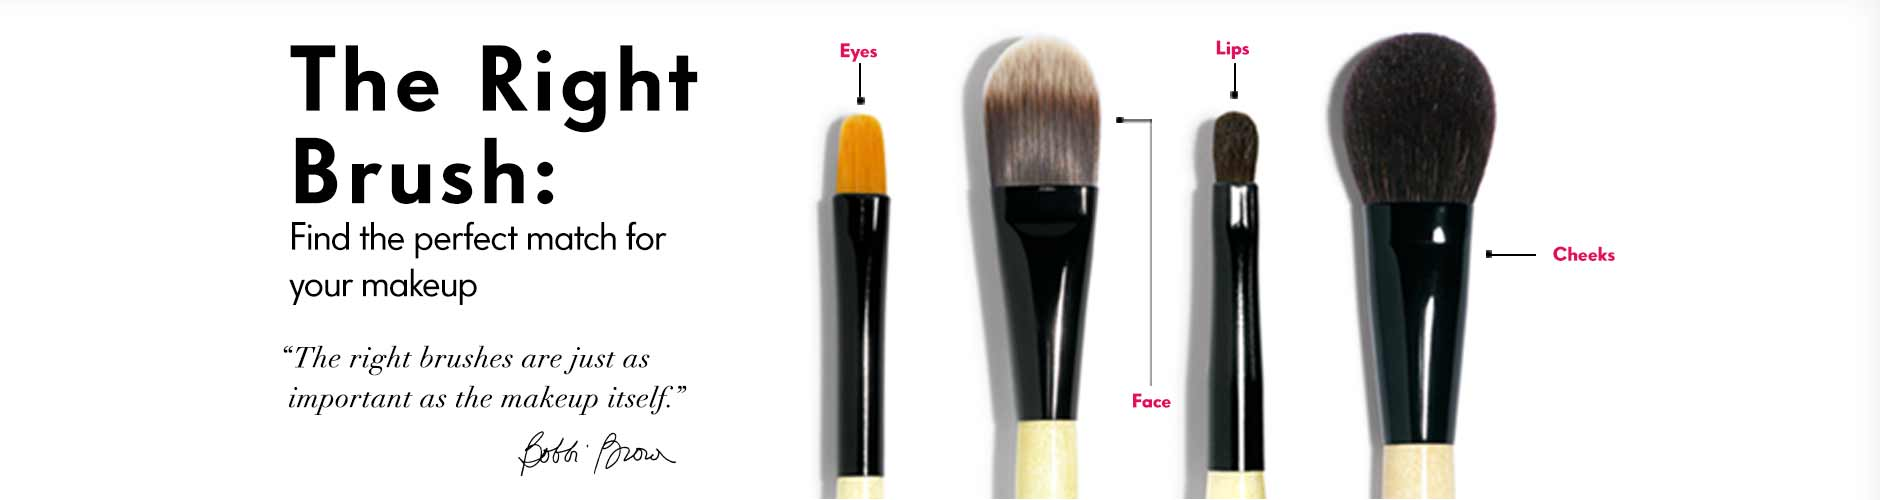 bobbi brown brushes uses. bobbi brown makeup brushes and their uses s